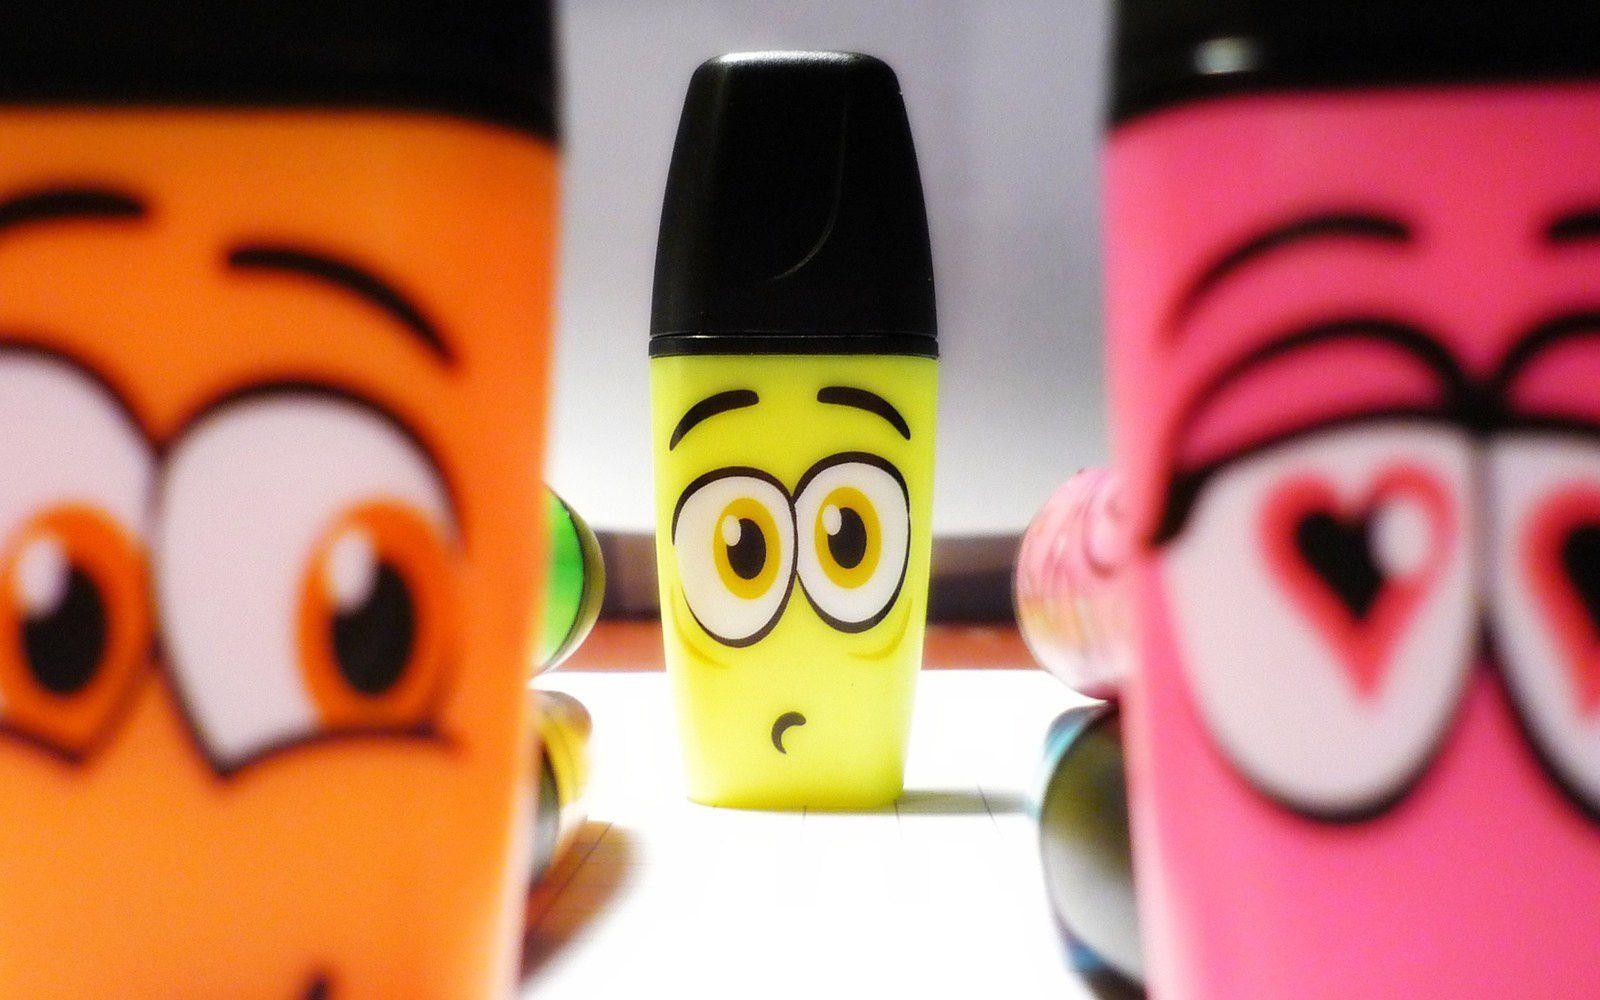 Stabilo - Couleurs - Yeux - Fluo - Wallpaper - Free